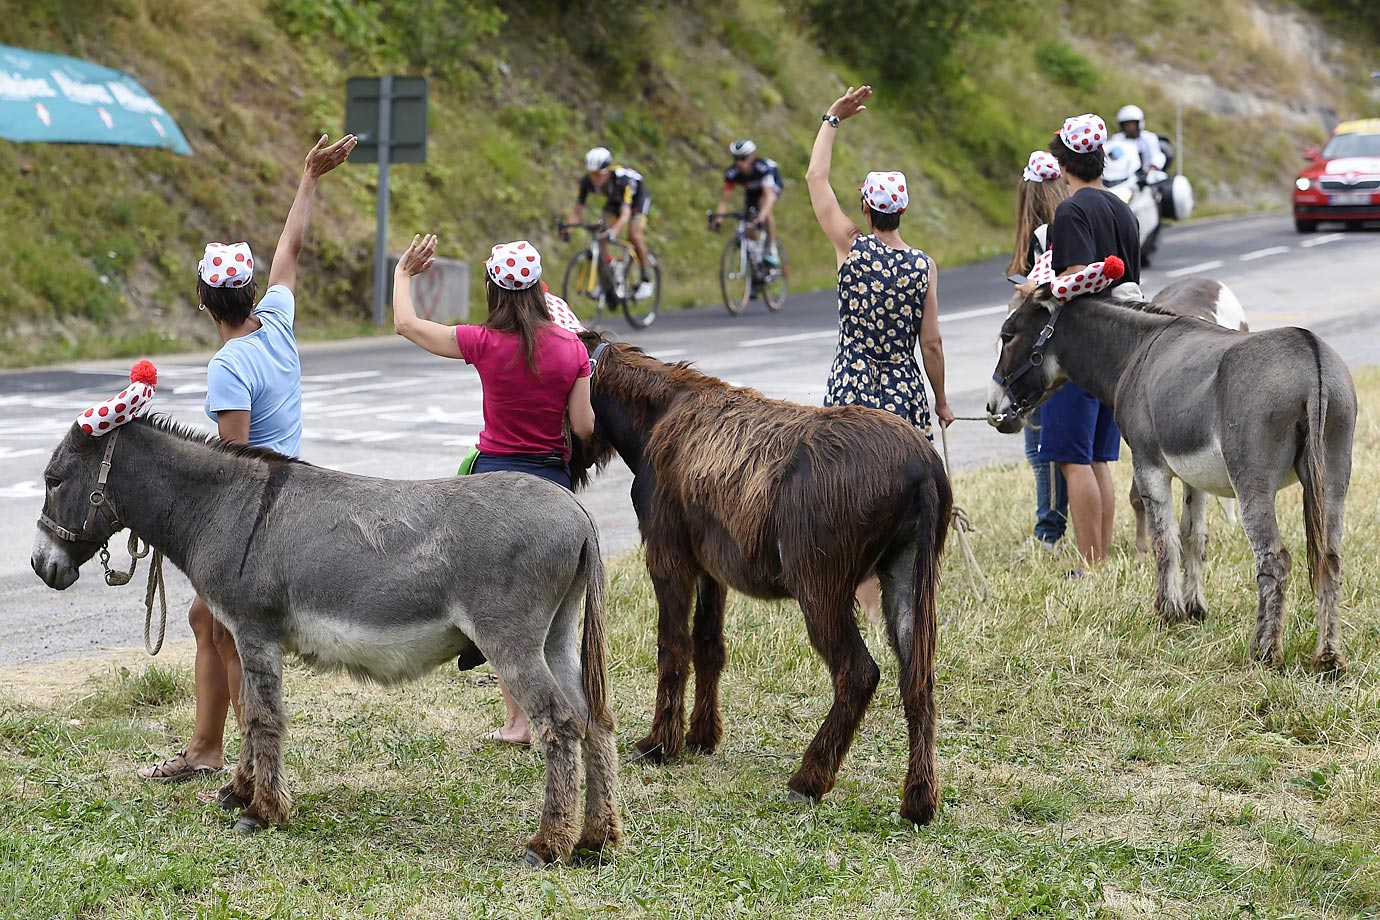 An interesting group of fans watch stage 19 of the Tour de France.